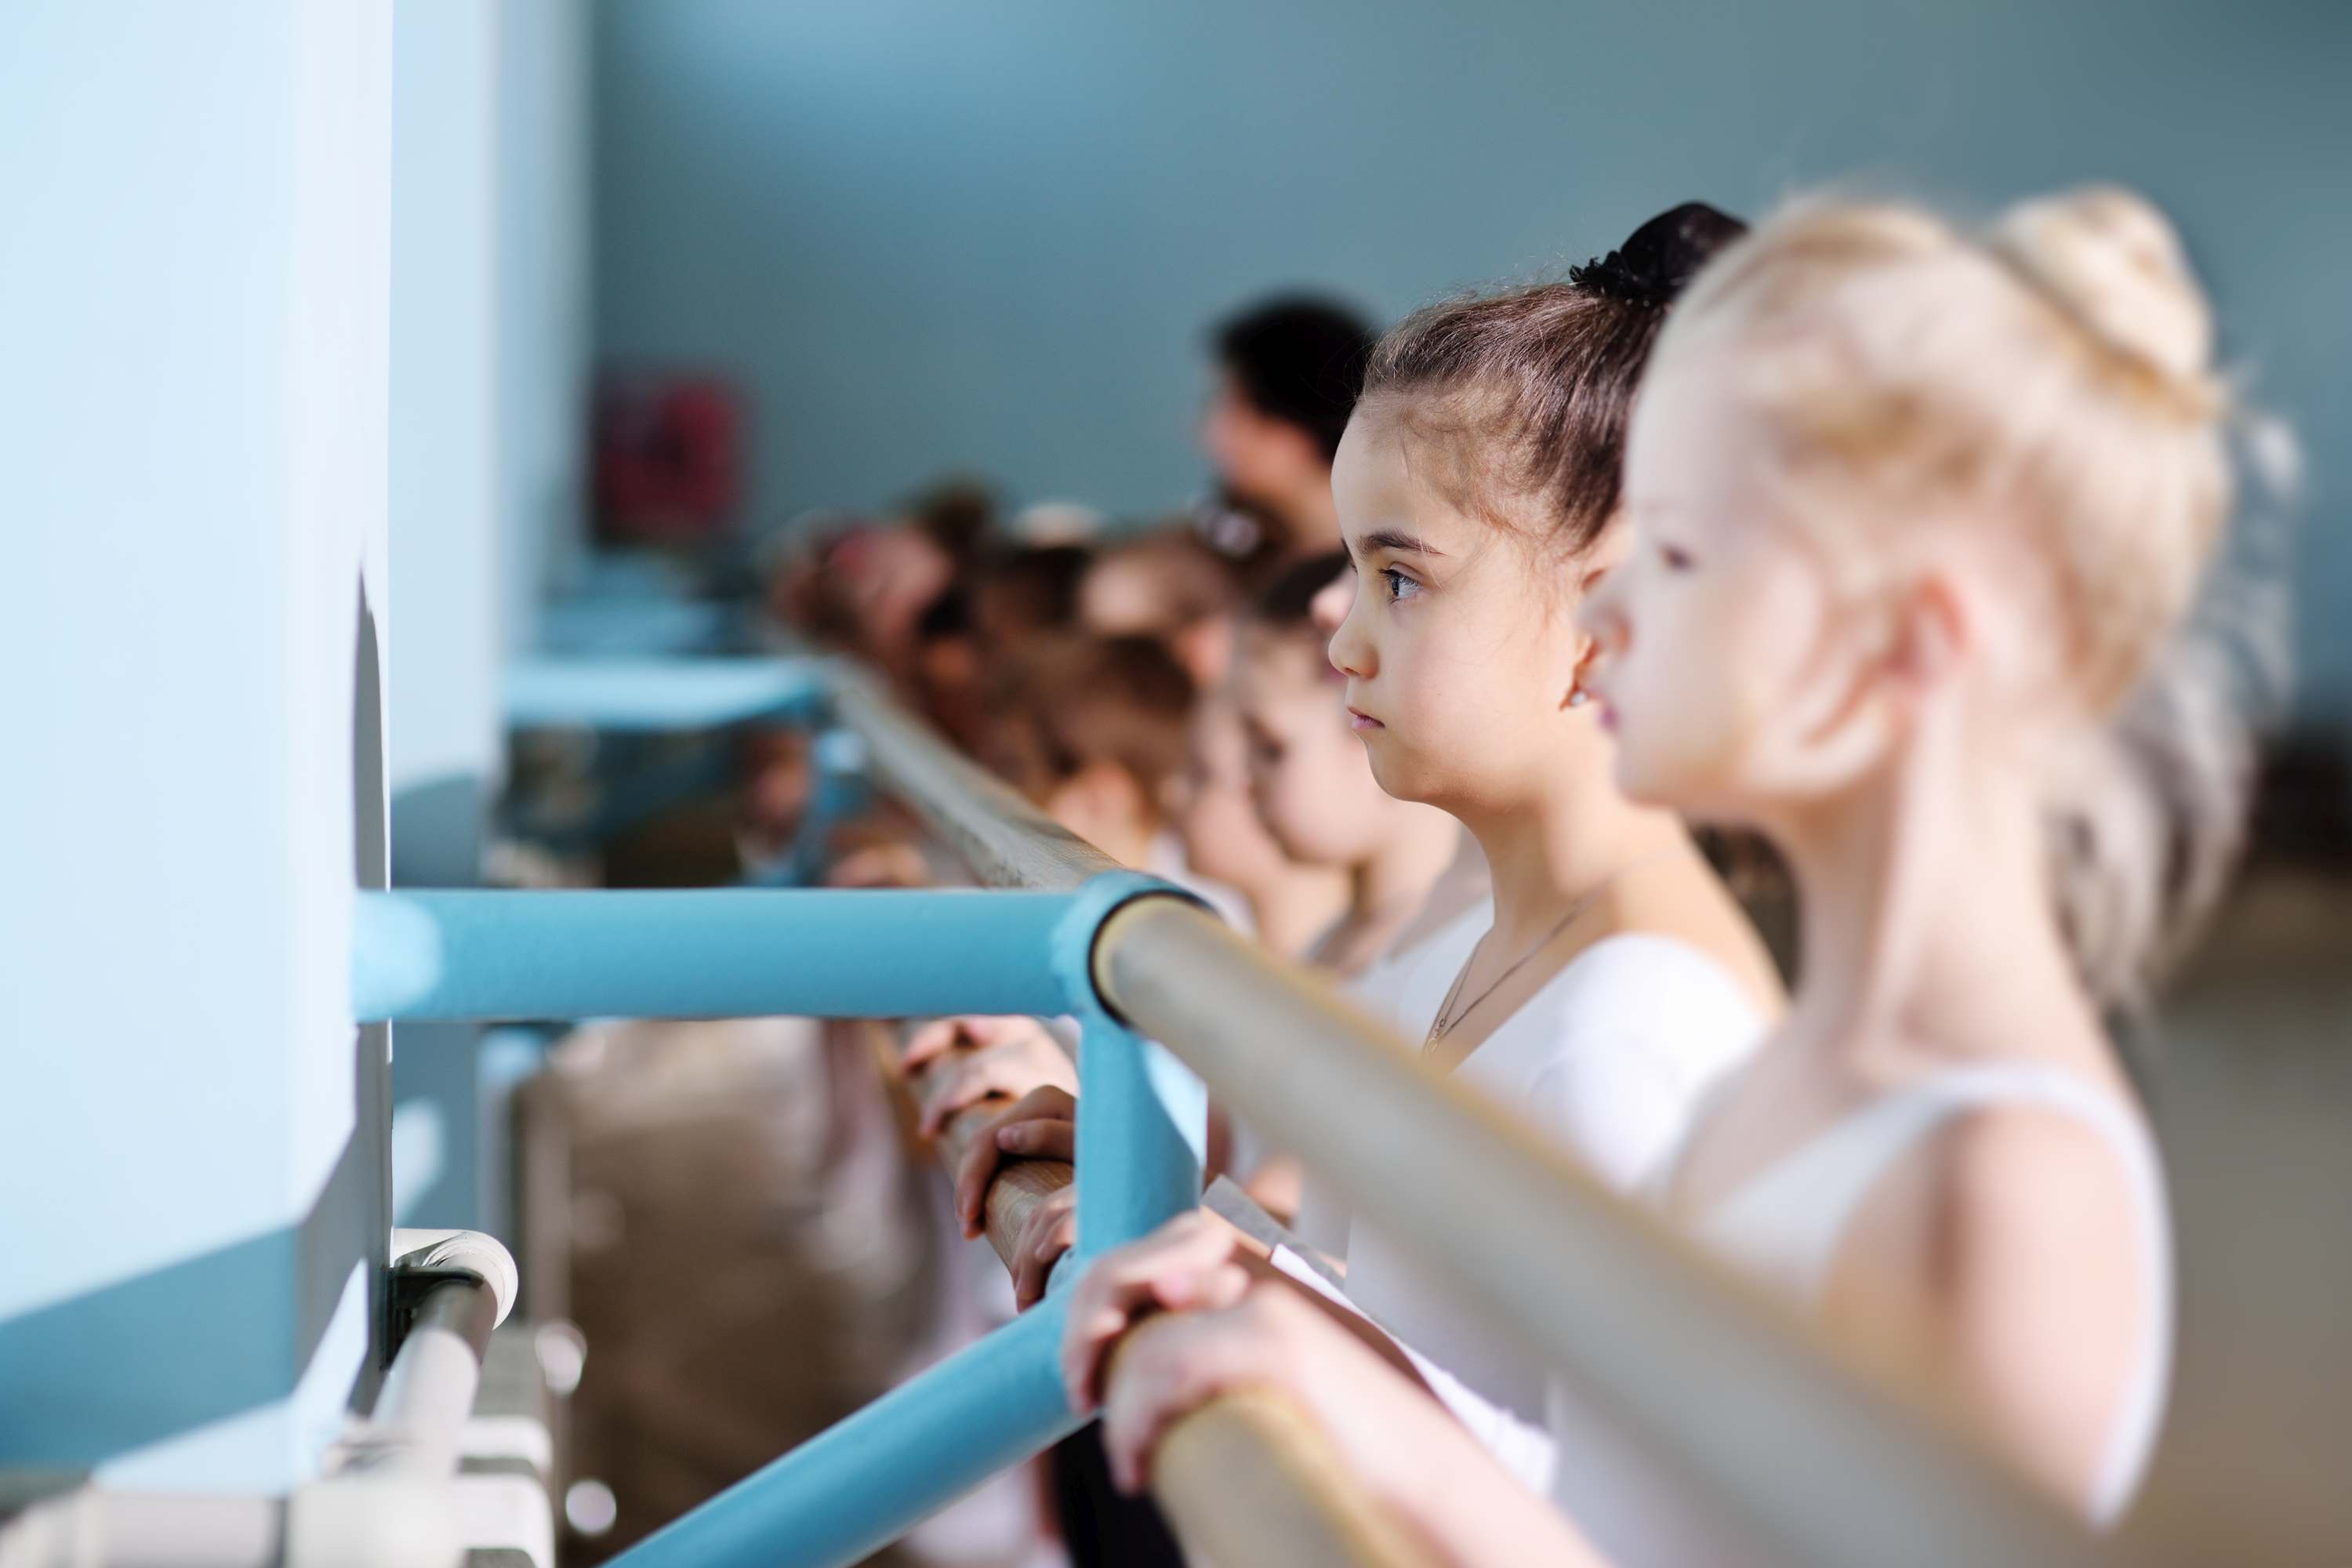 The Training of Young Dancers